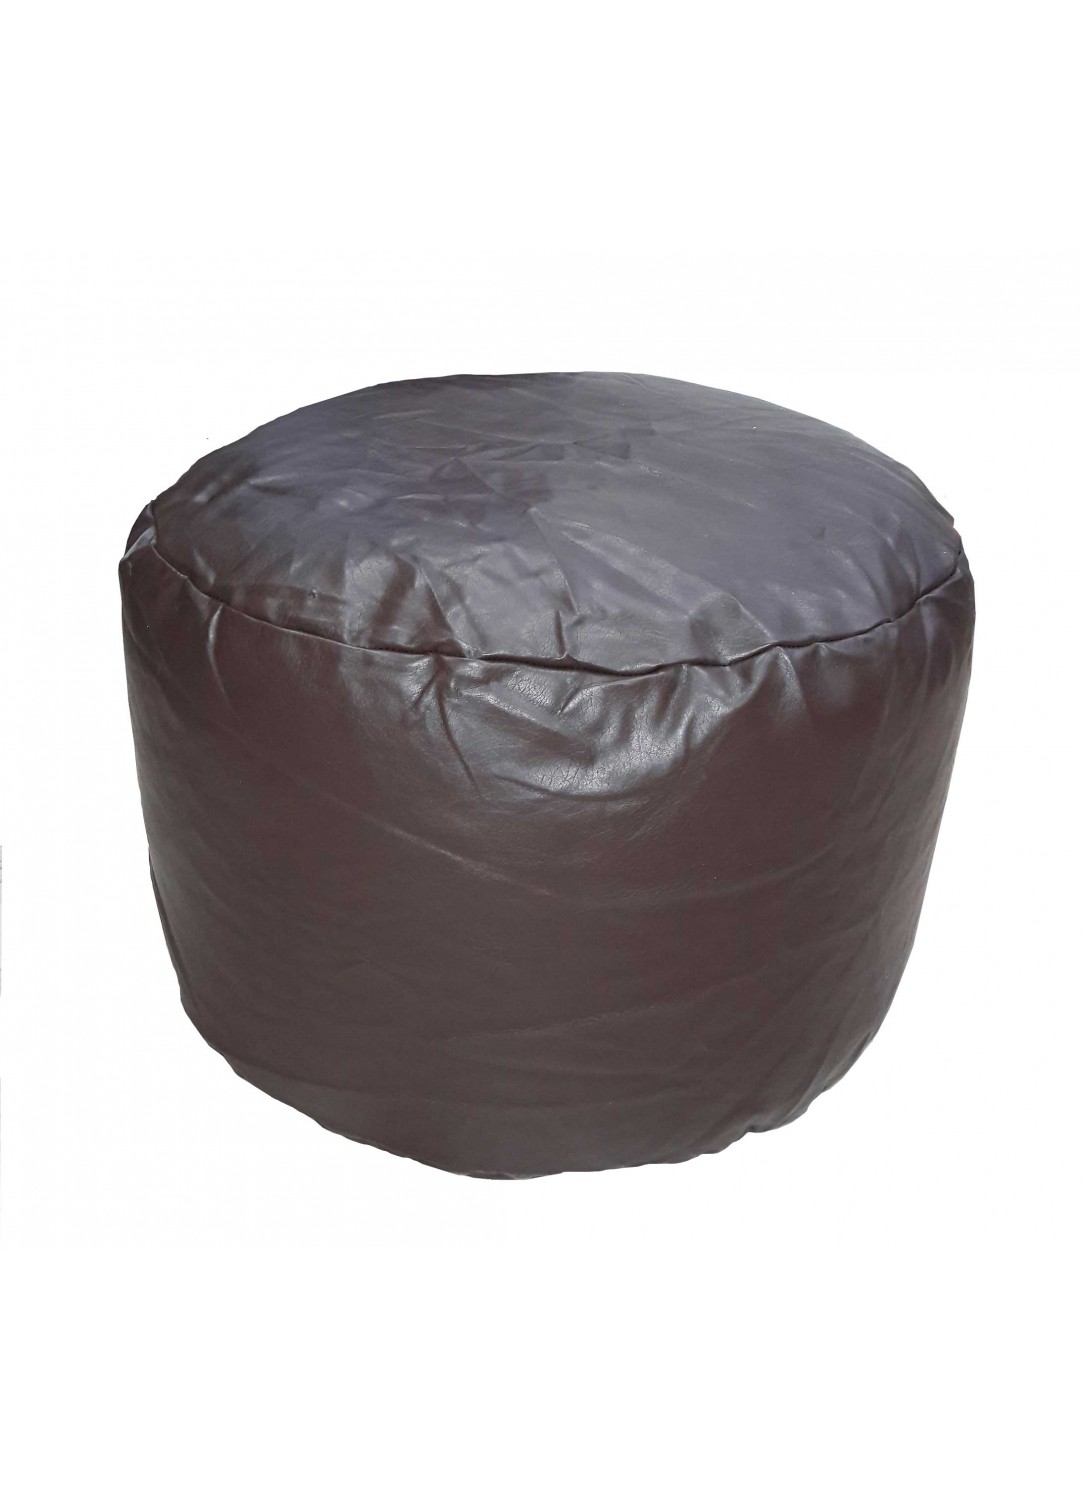 pouf rond en imitation cuir chocolat homemaison vente en ligne poufs cubes microbilles. Black Bedroom Furniture Sets. Home Design Ideas